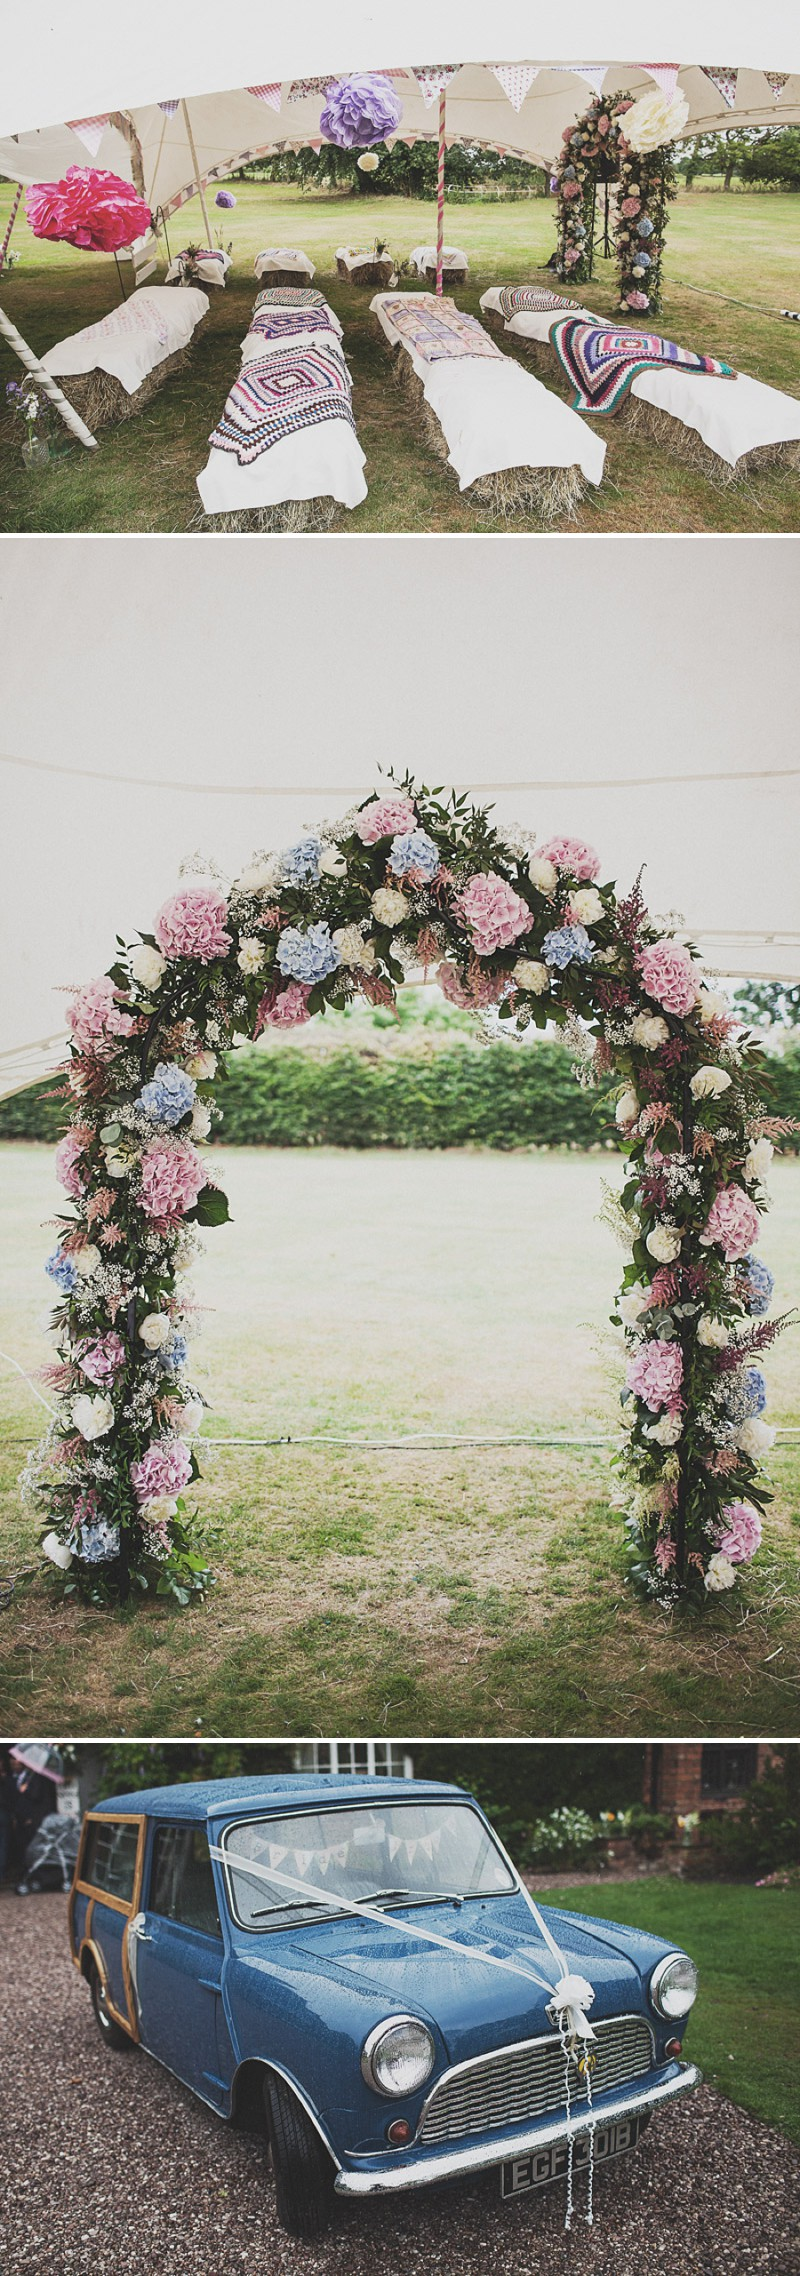 A Festival Inspired Bohemian Wedding With Wildflowers And A Floral Crown At Haslington Hall By Anna Hardy Photography. 0001 Wildflowers At Wedfest.